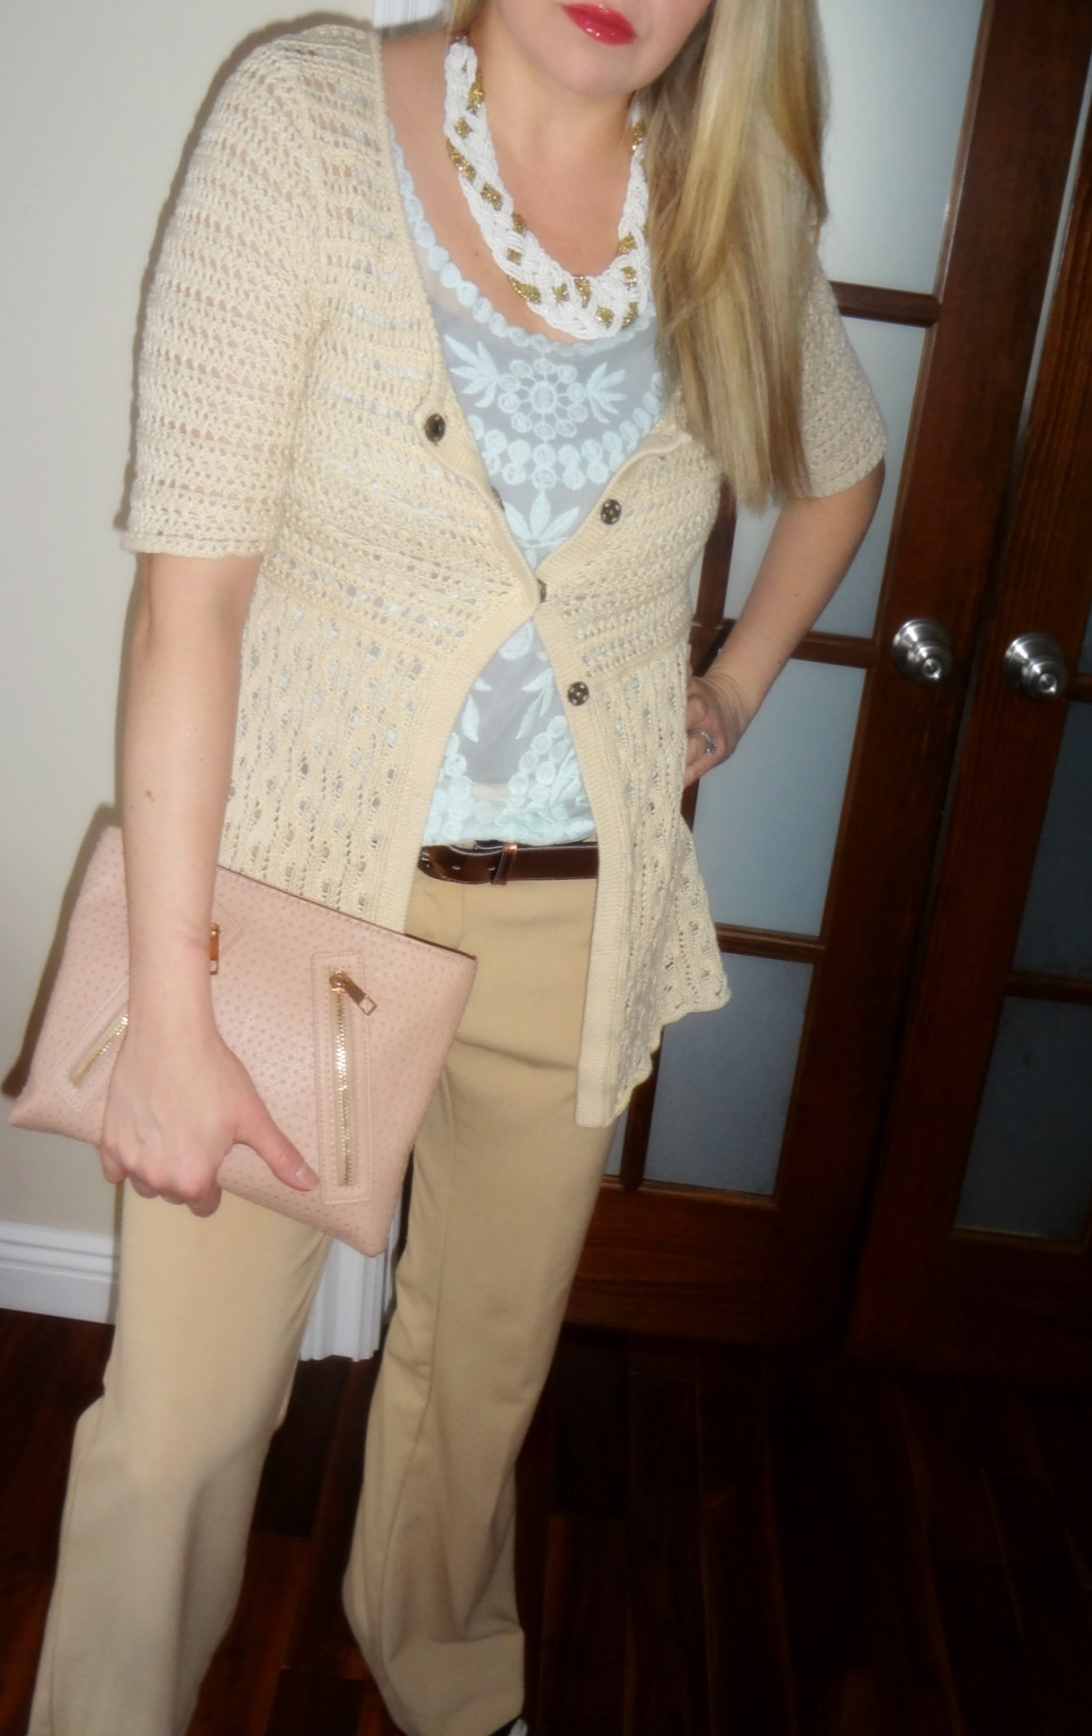 Coat: H&M, Scarf: H&M, Necklace: Aldo, Top: H&M, Cardigan: Nine West, Belt: ASOS, Pants: The Limited, Shoes: Steve Madden, Clutch: ASOS